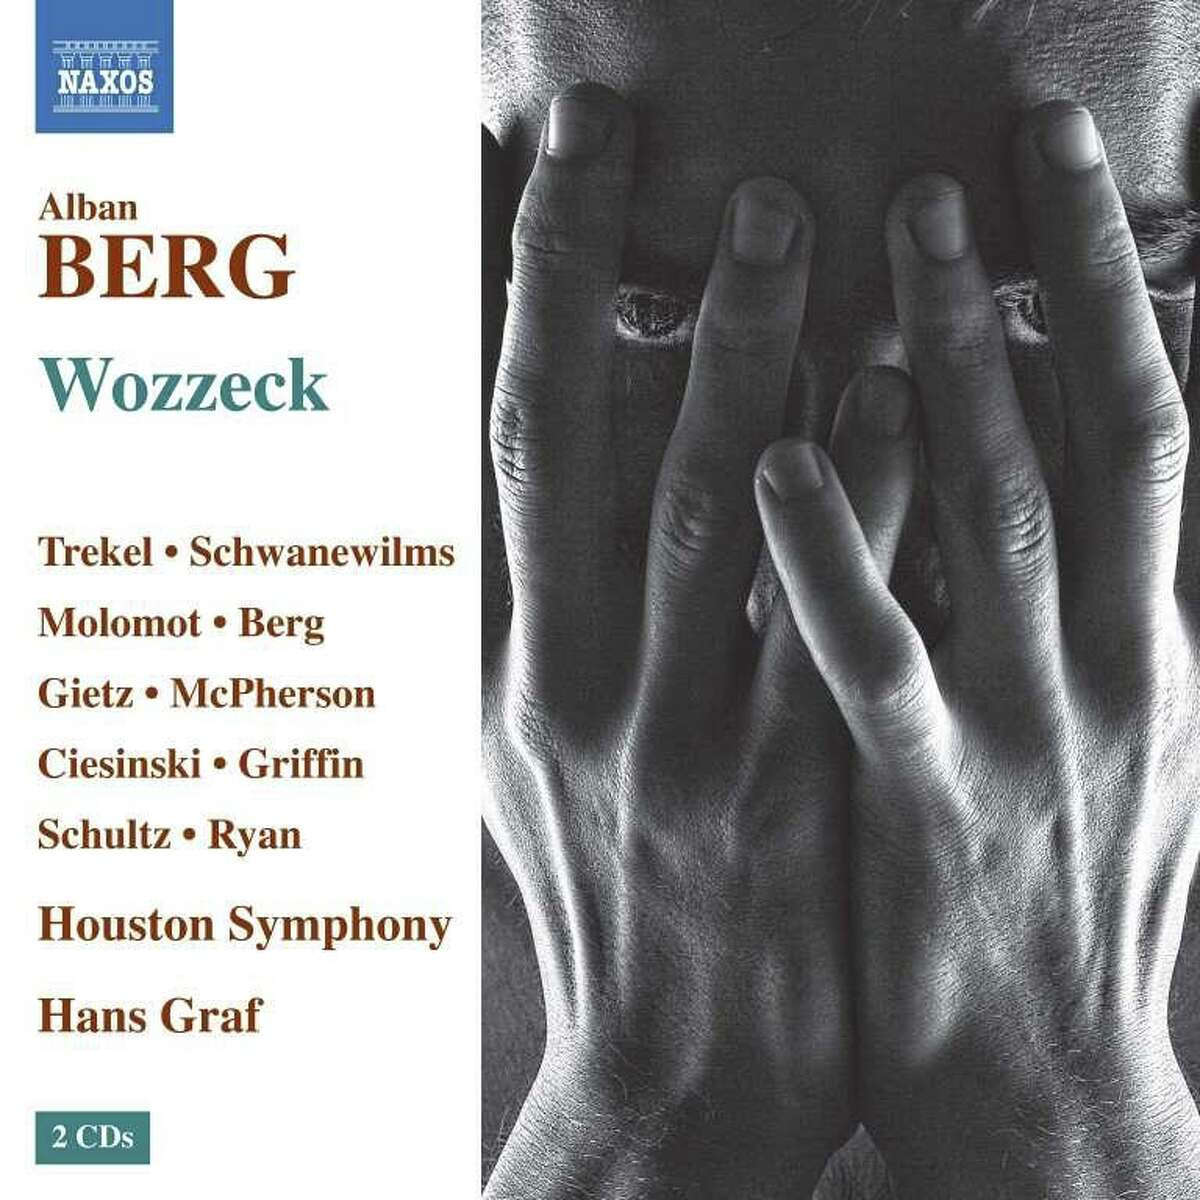 The Houston Symphony has received a nomination for the 60th Grammy Awards for the recording of Alban Berg�'s